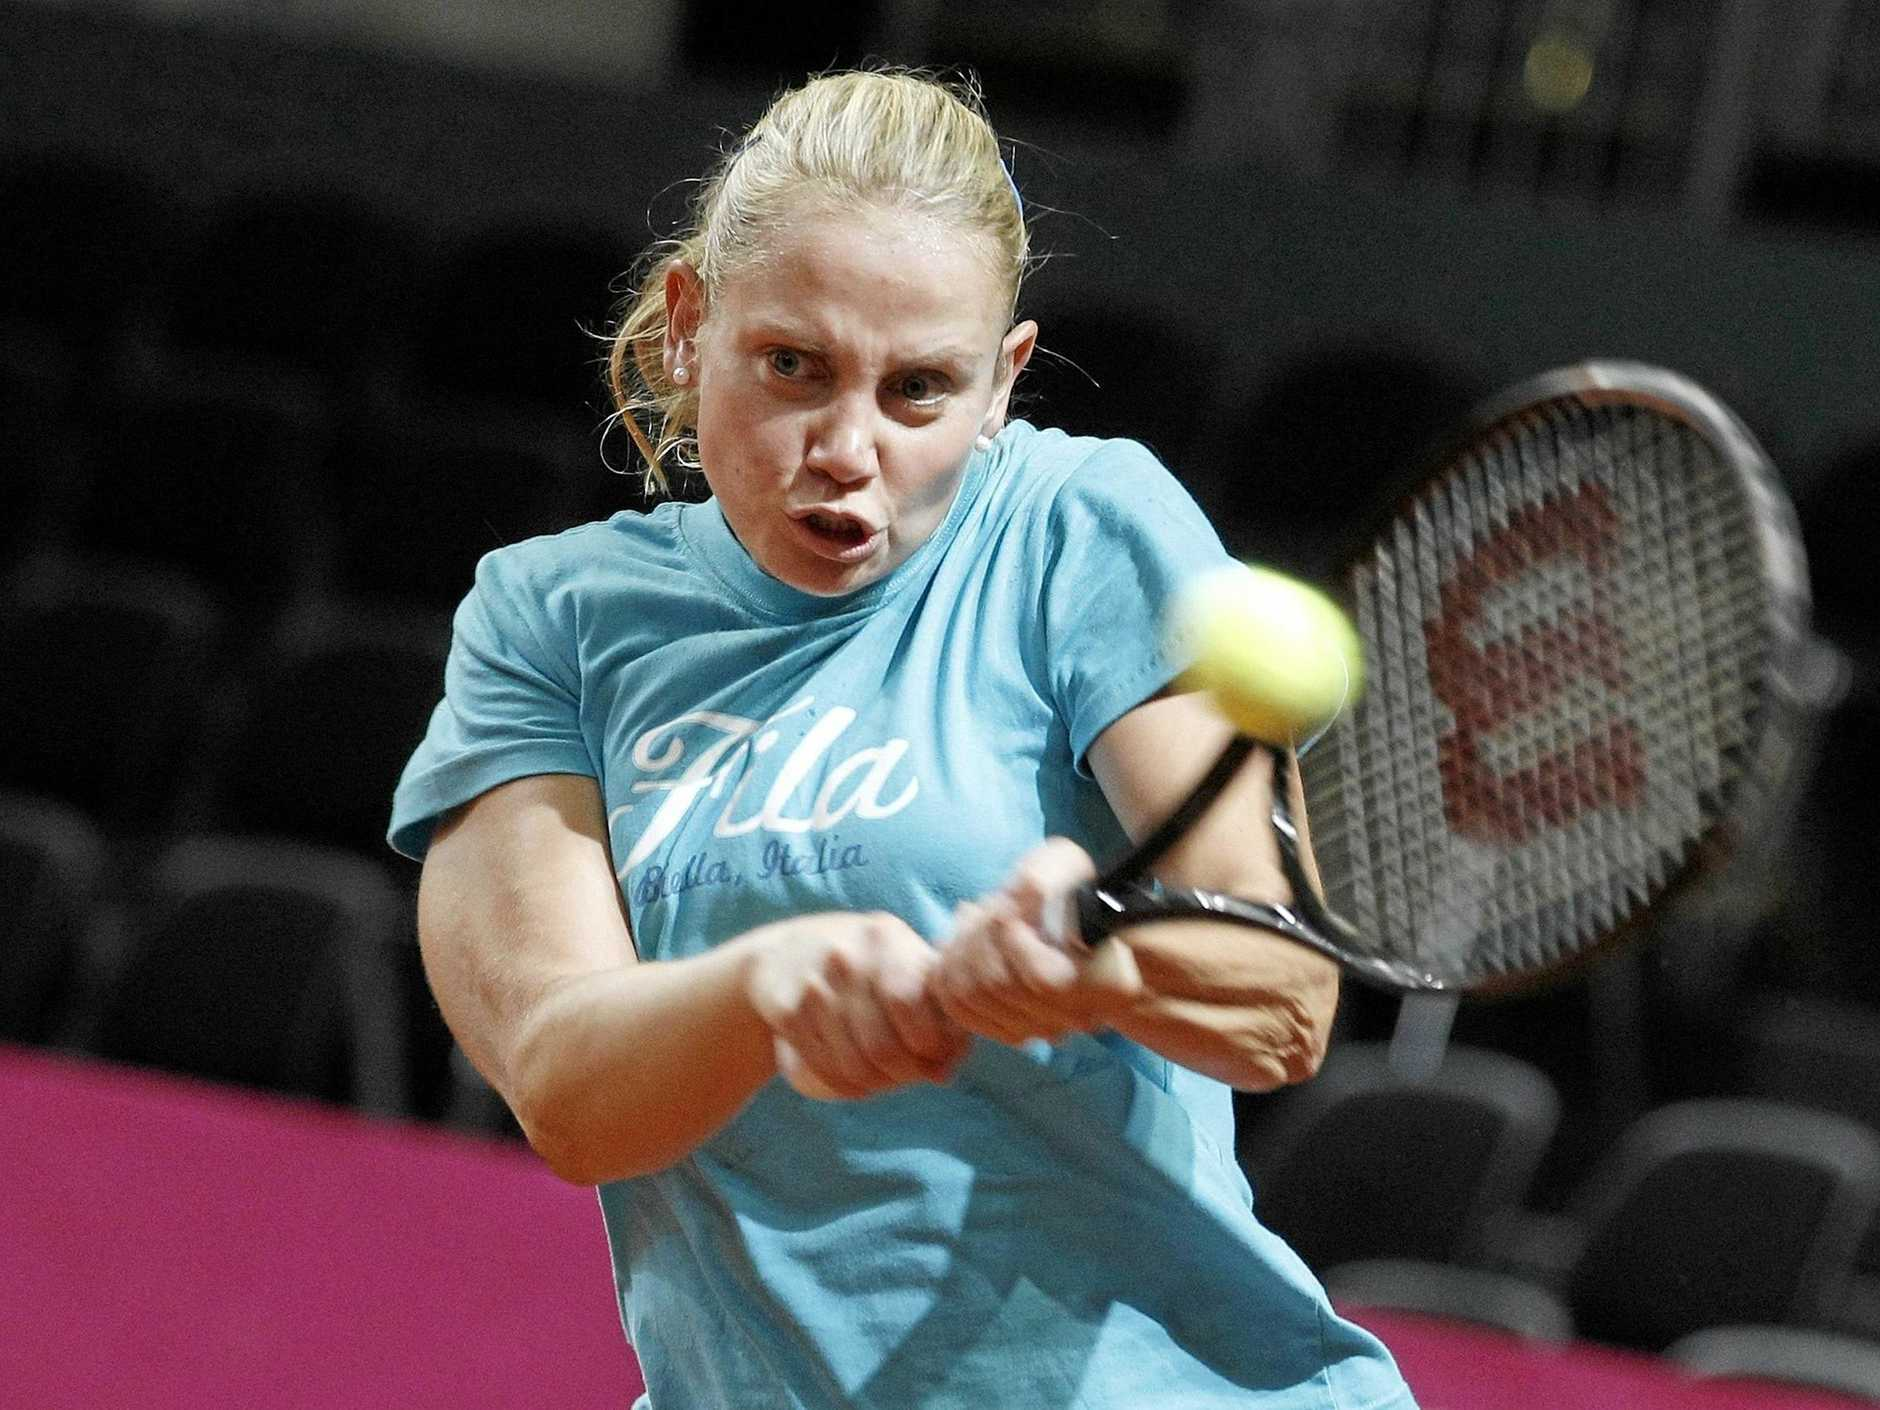 Australia's Fed Cup tennis player Jelena Dokic returns a ball during a training session in the Forum Arena in Fribourg, Switzerland, Wednesday, Feb. 1, 2012.